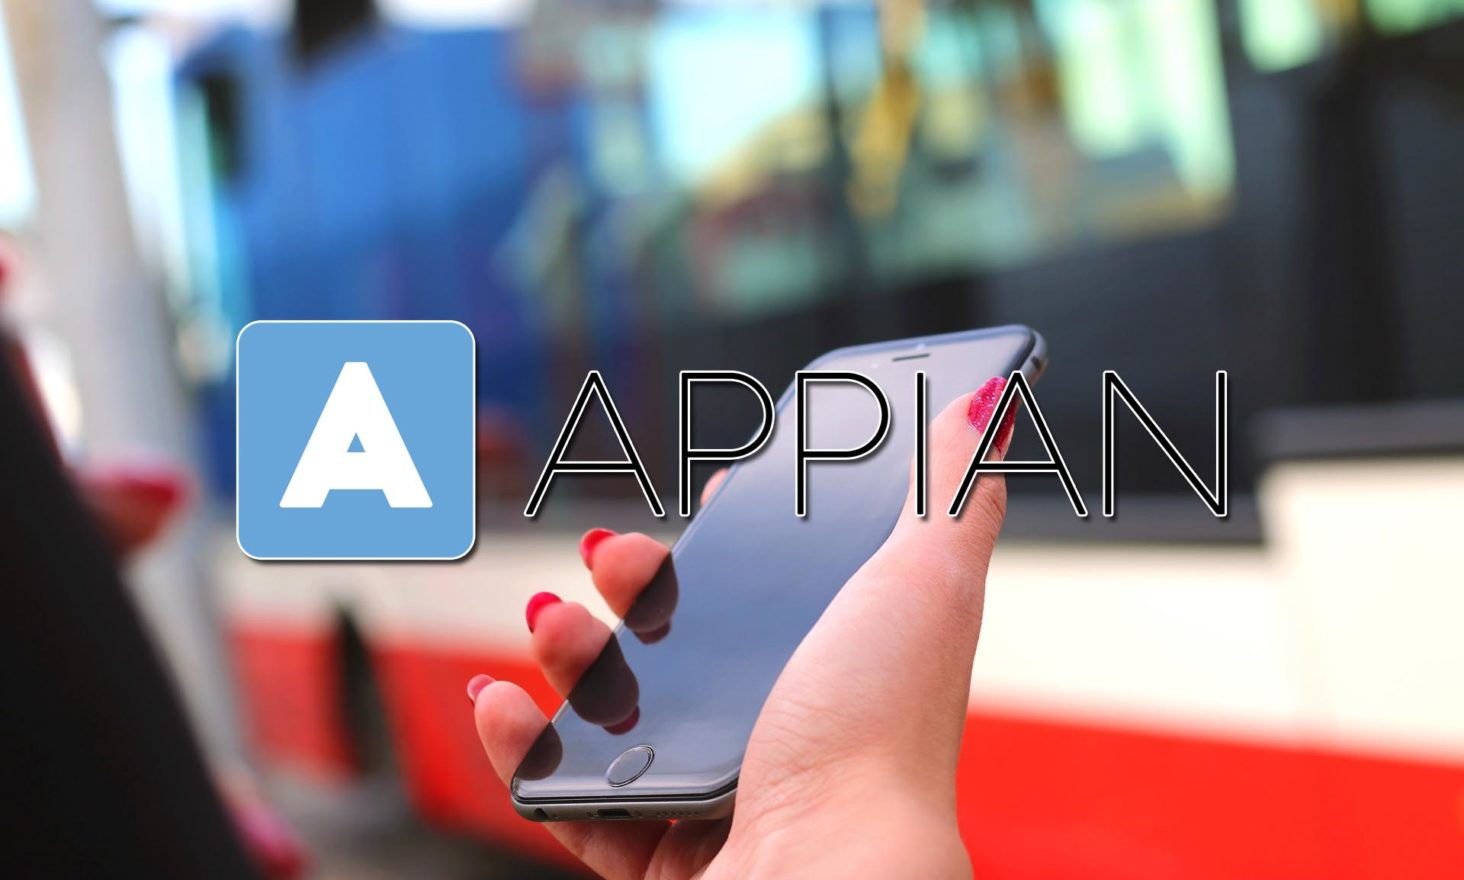 HOT – Appian - The Revolutionary App Store for Ethereum